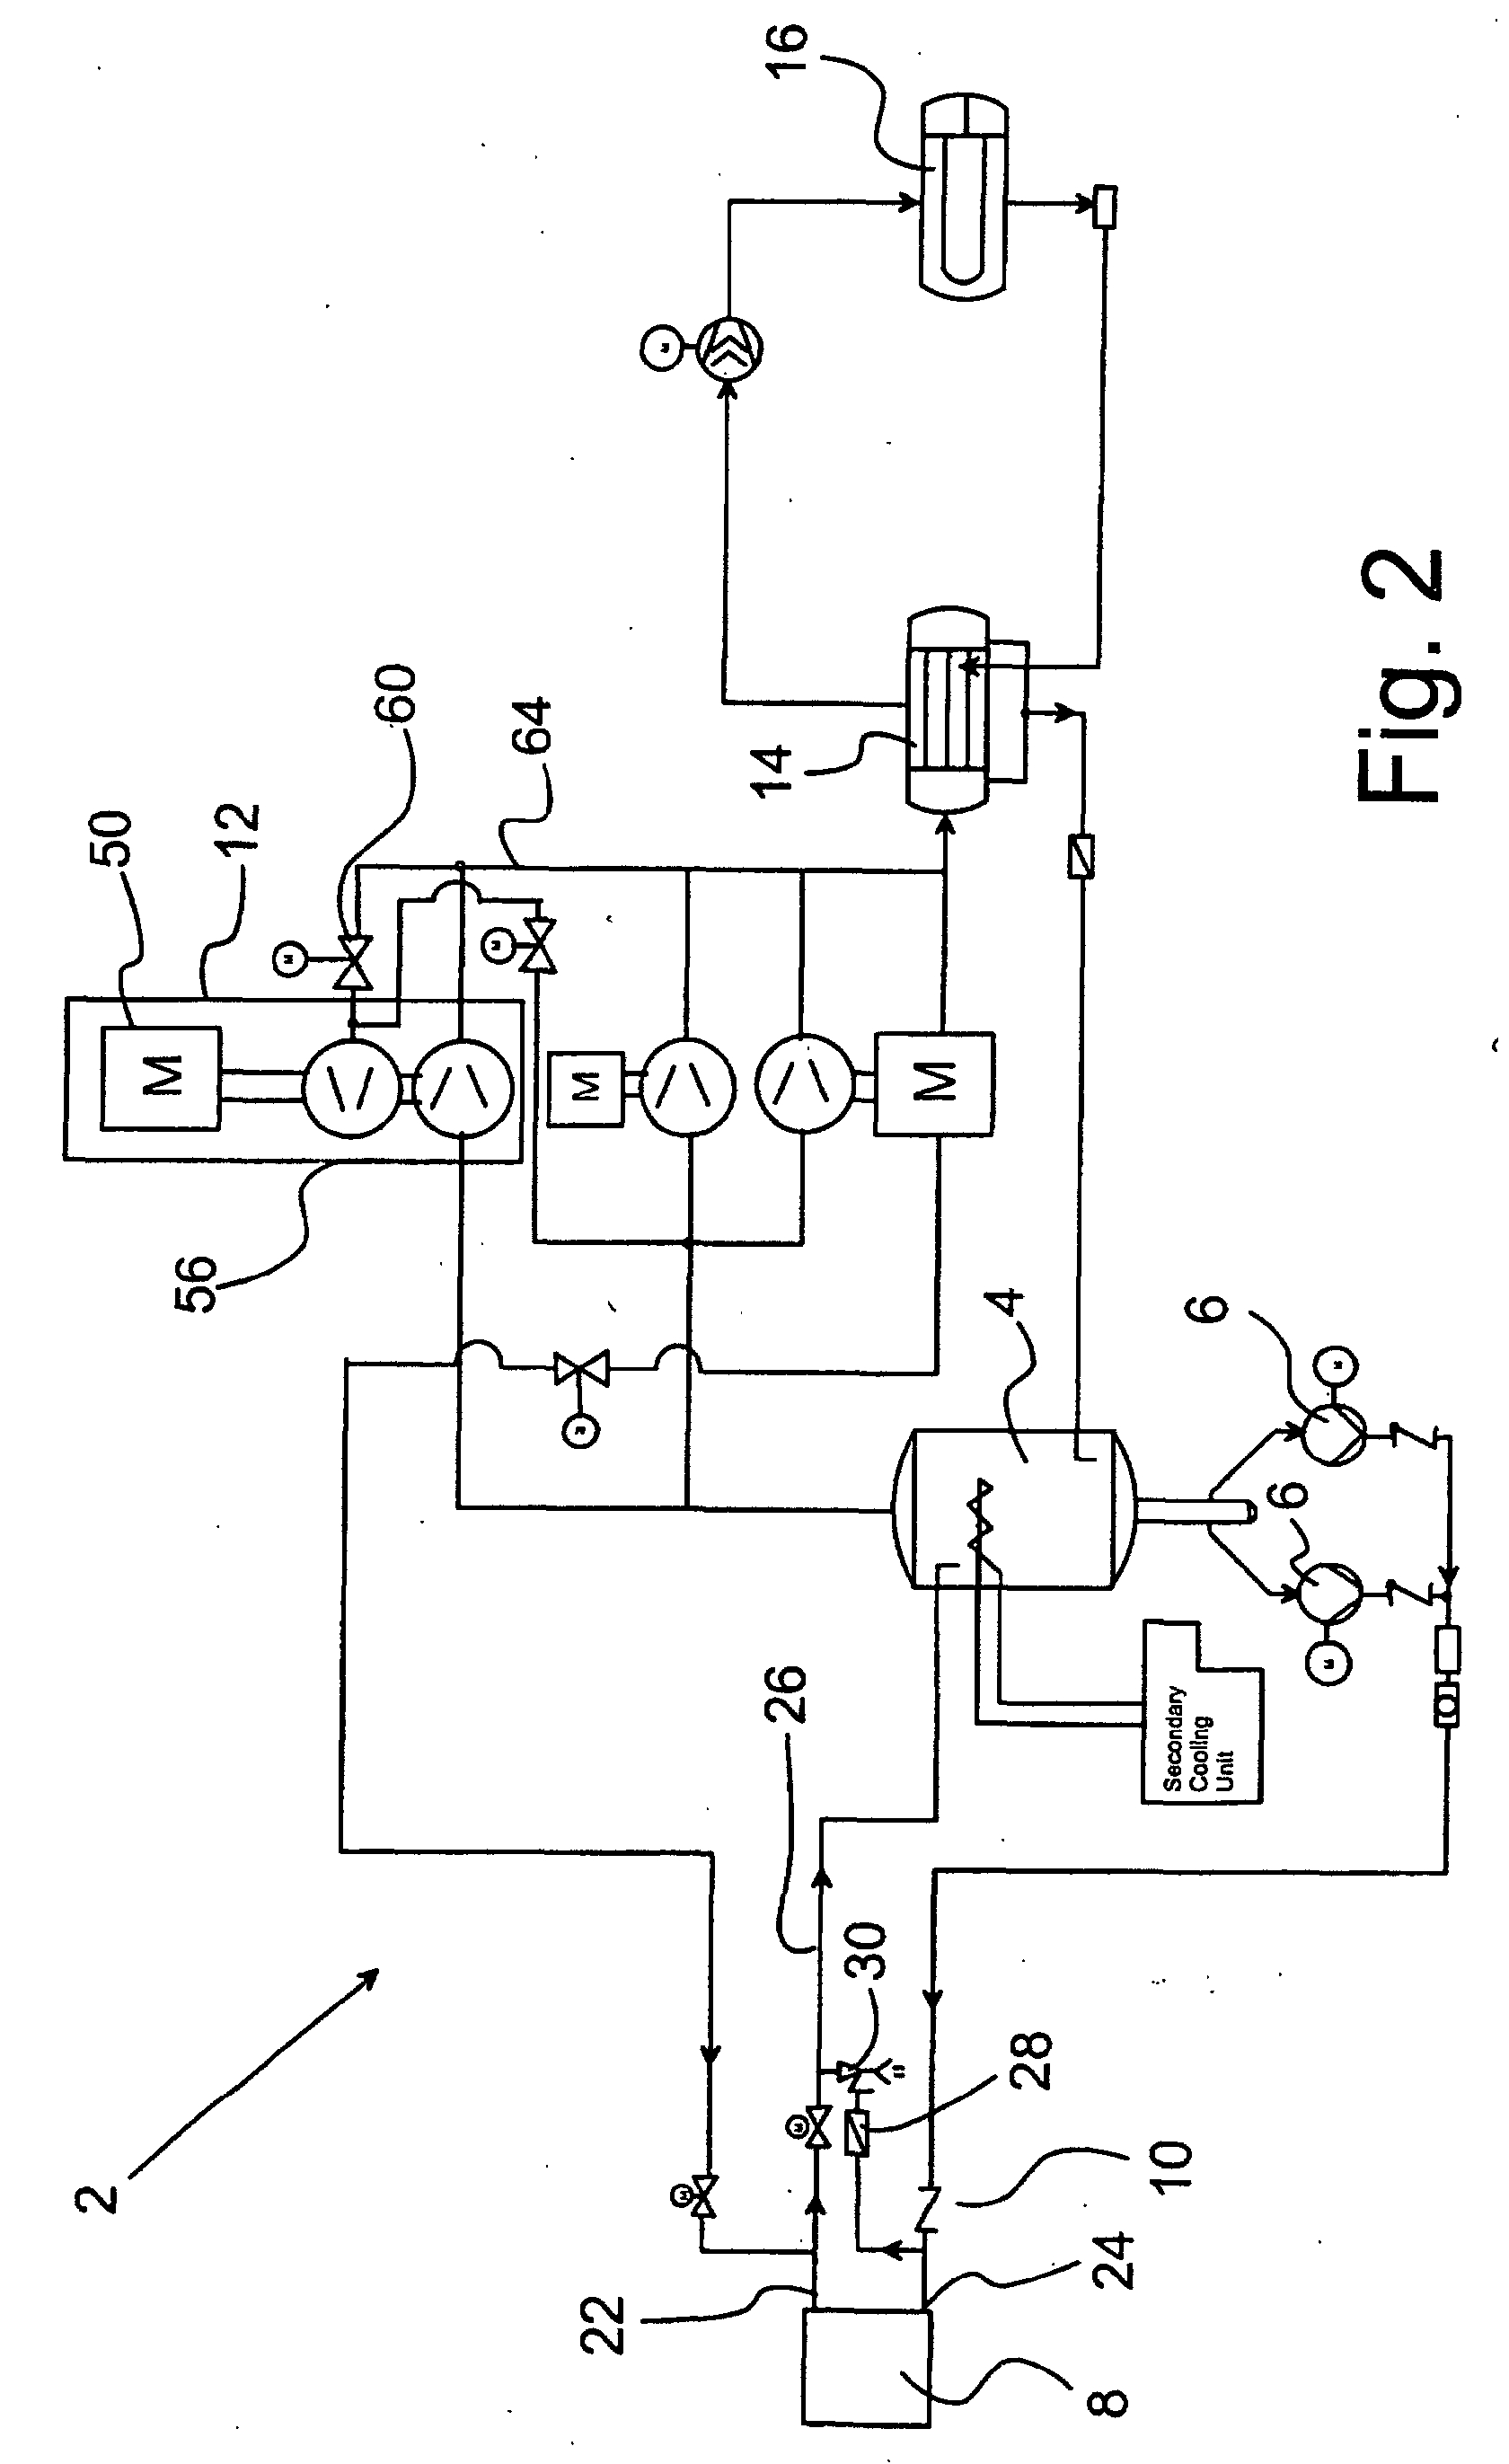 russell evaporator wiring diagram free download  u2022 playapk co